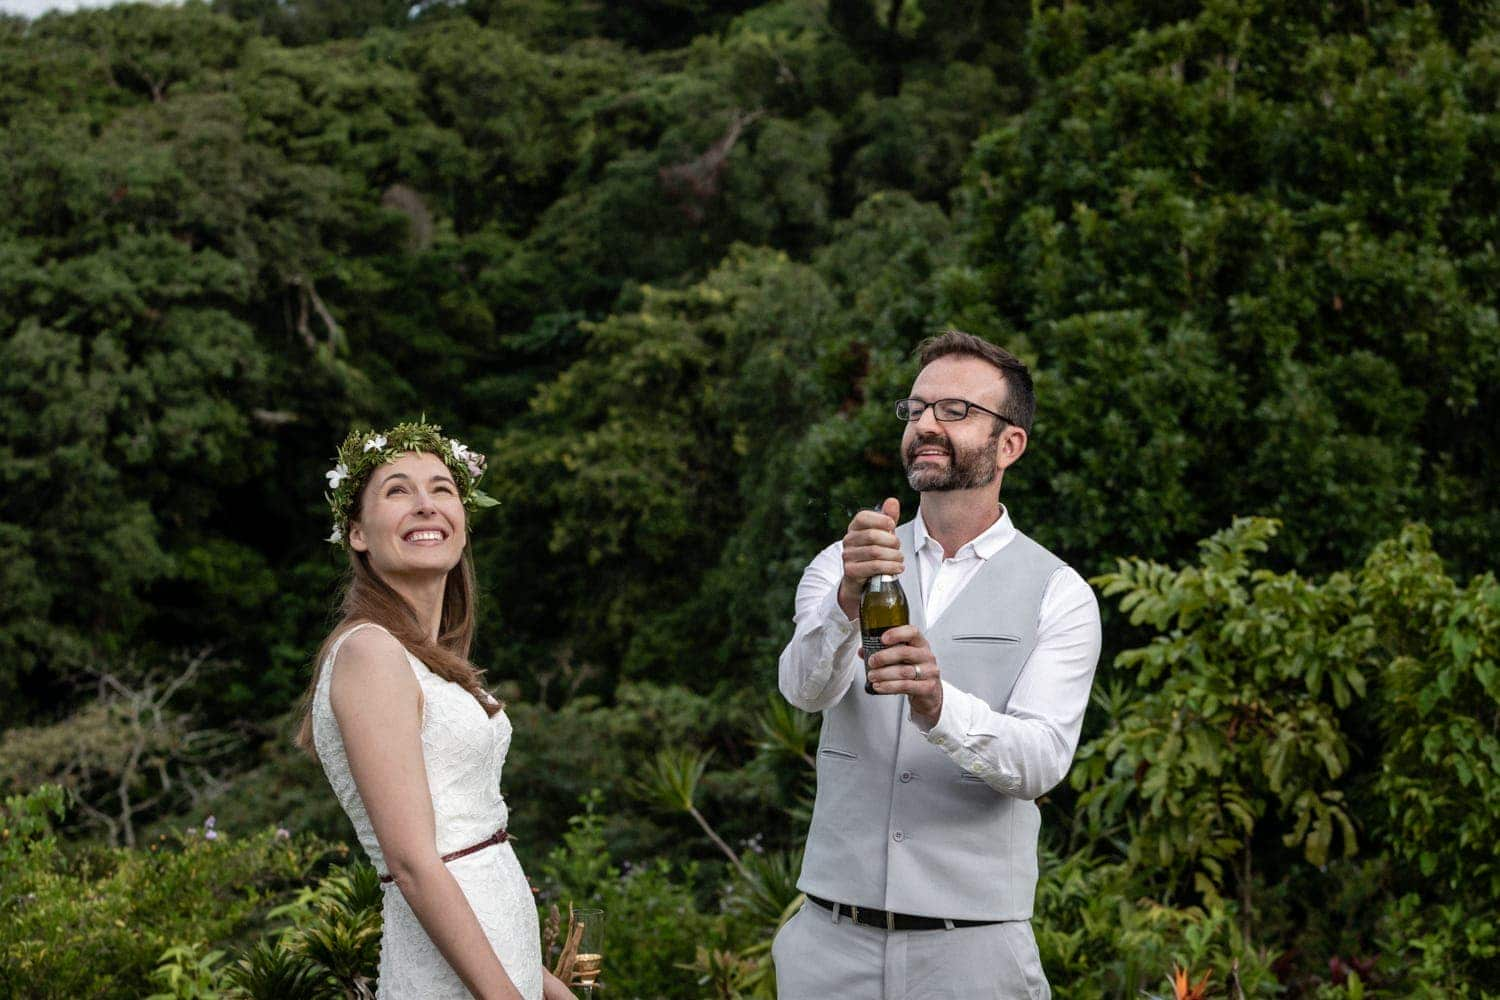 Couple breaks open a bottle of champaign after saying I do.